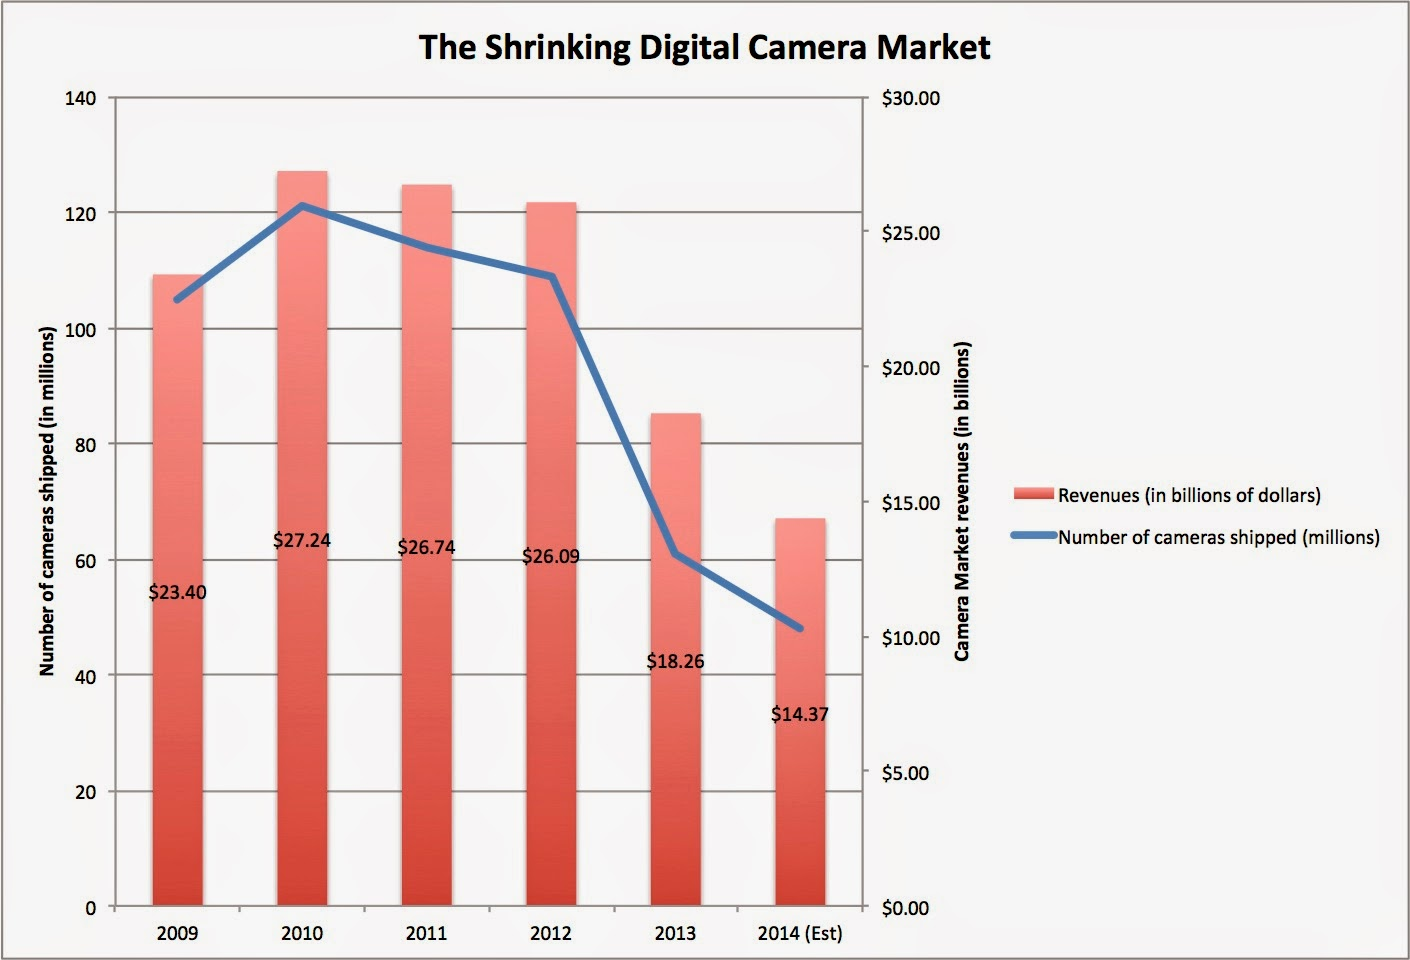 Musings on Markets: Go Pro: Camera or Smartphone? Social Media or ...